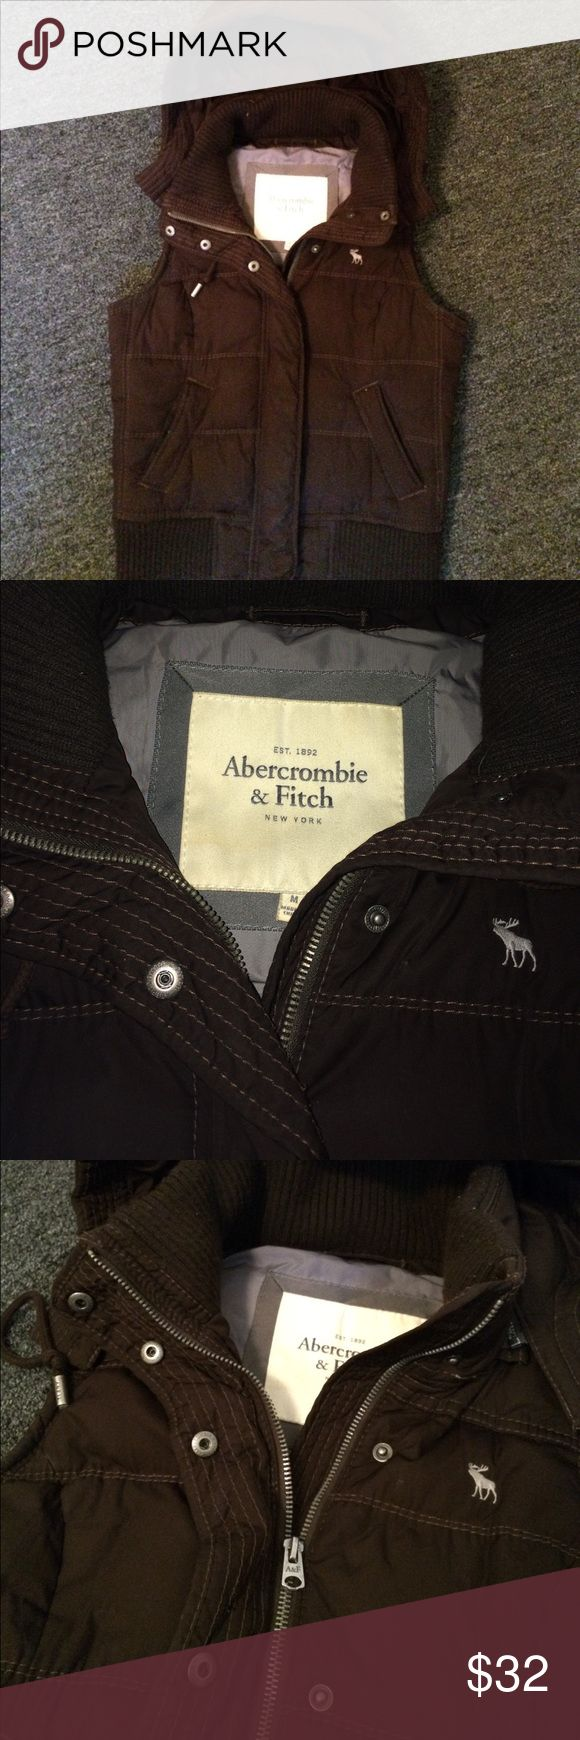 Abercrombie and Fitch Brown Down Vest Size Medium Awesome dark brown vest with a lighter brown stitching. Great condition! Down filled and hooded. Good can be removed. Super deal! Great with a fitted long sleeve T and some jeans. The color is great to match with anything! Abercrombie & Fitch Jackets & Coats Vests